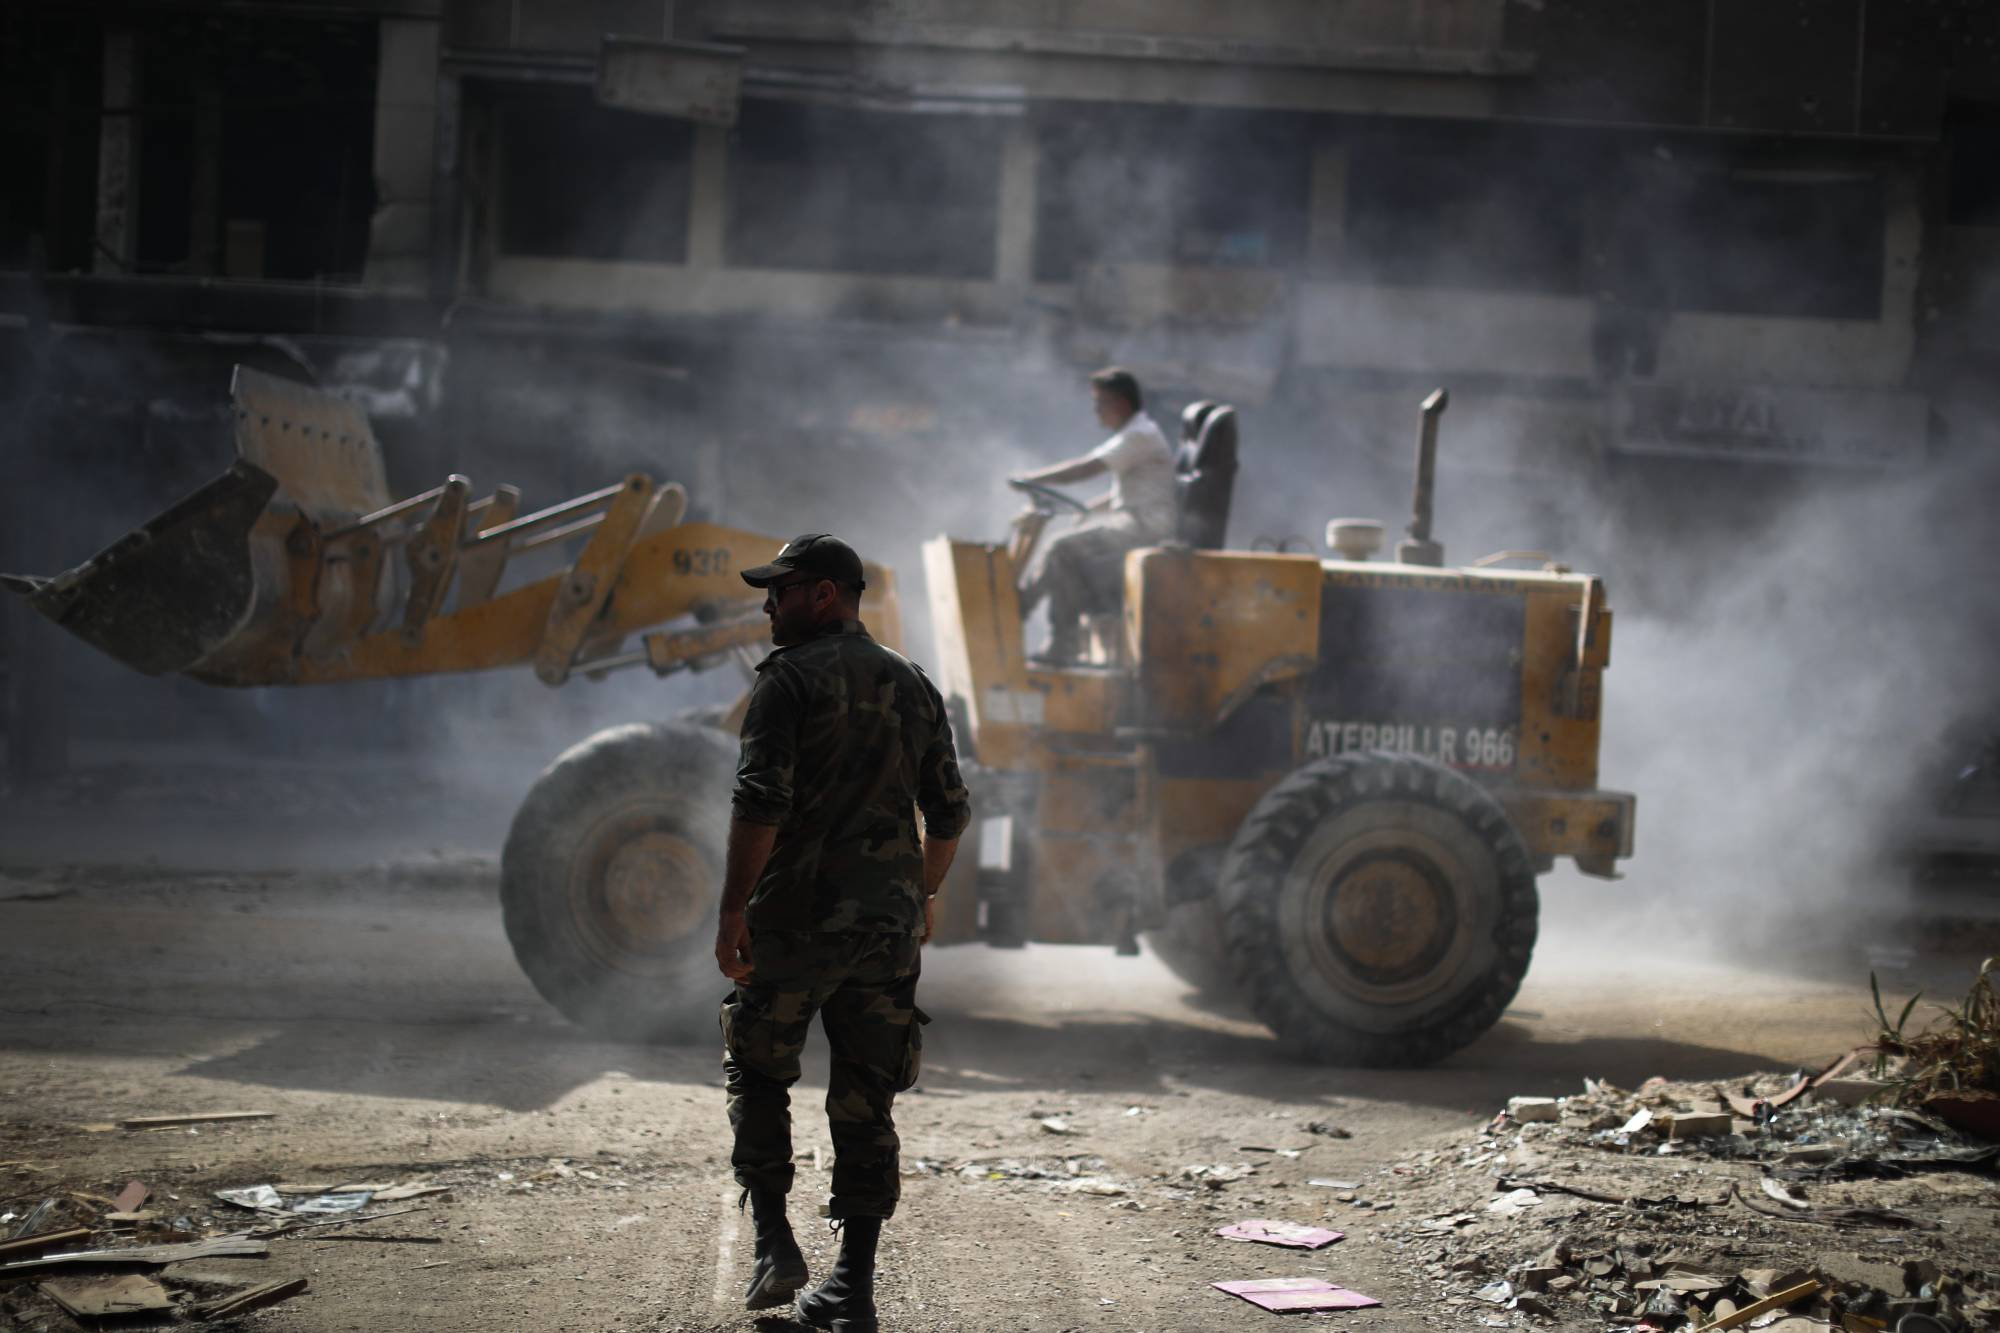 A Syrian soldier directs a bulldozer while removing rubble from the Yarmouk camp streets in Damascus – 6 October, 2018 (AP)